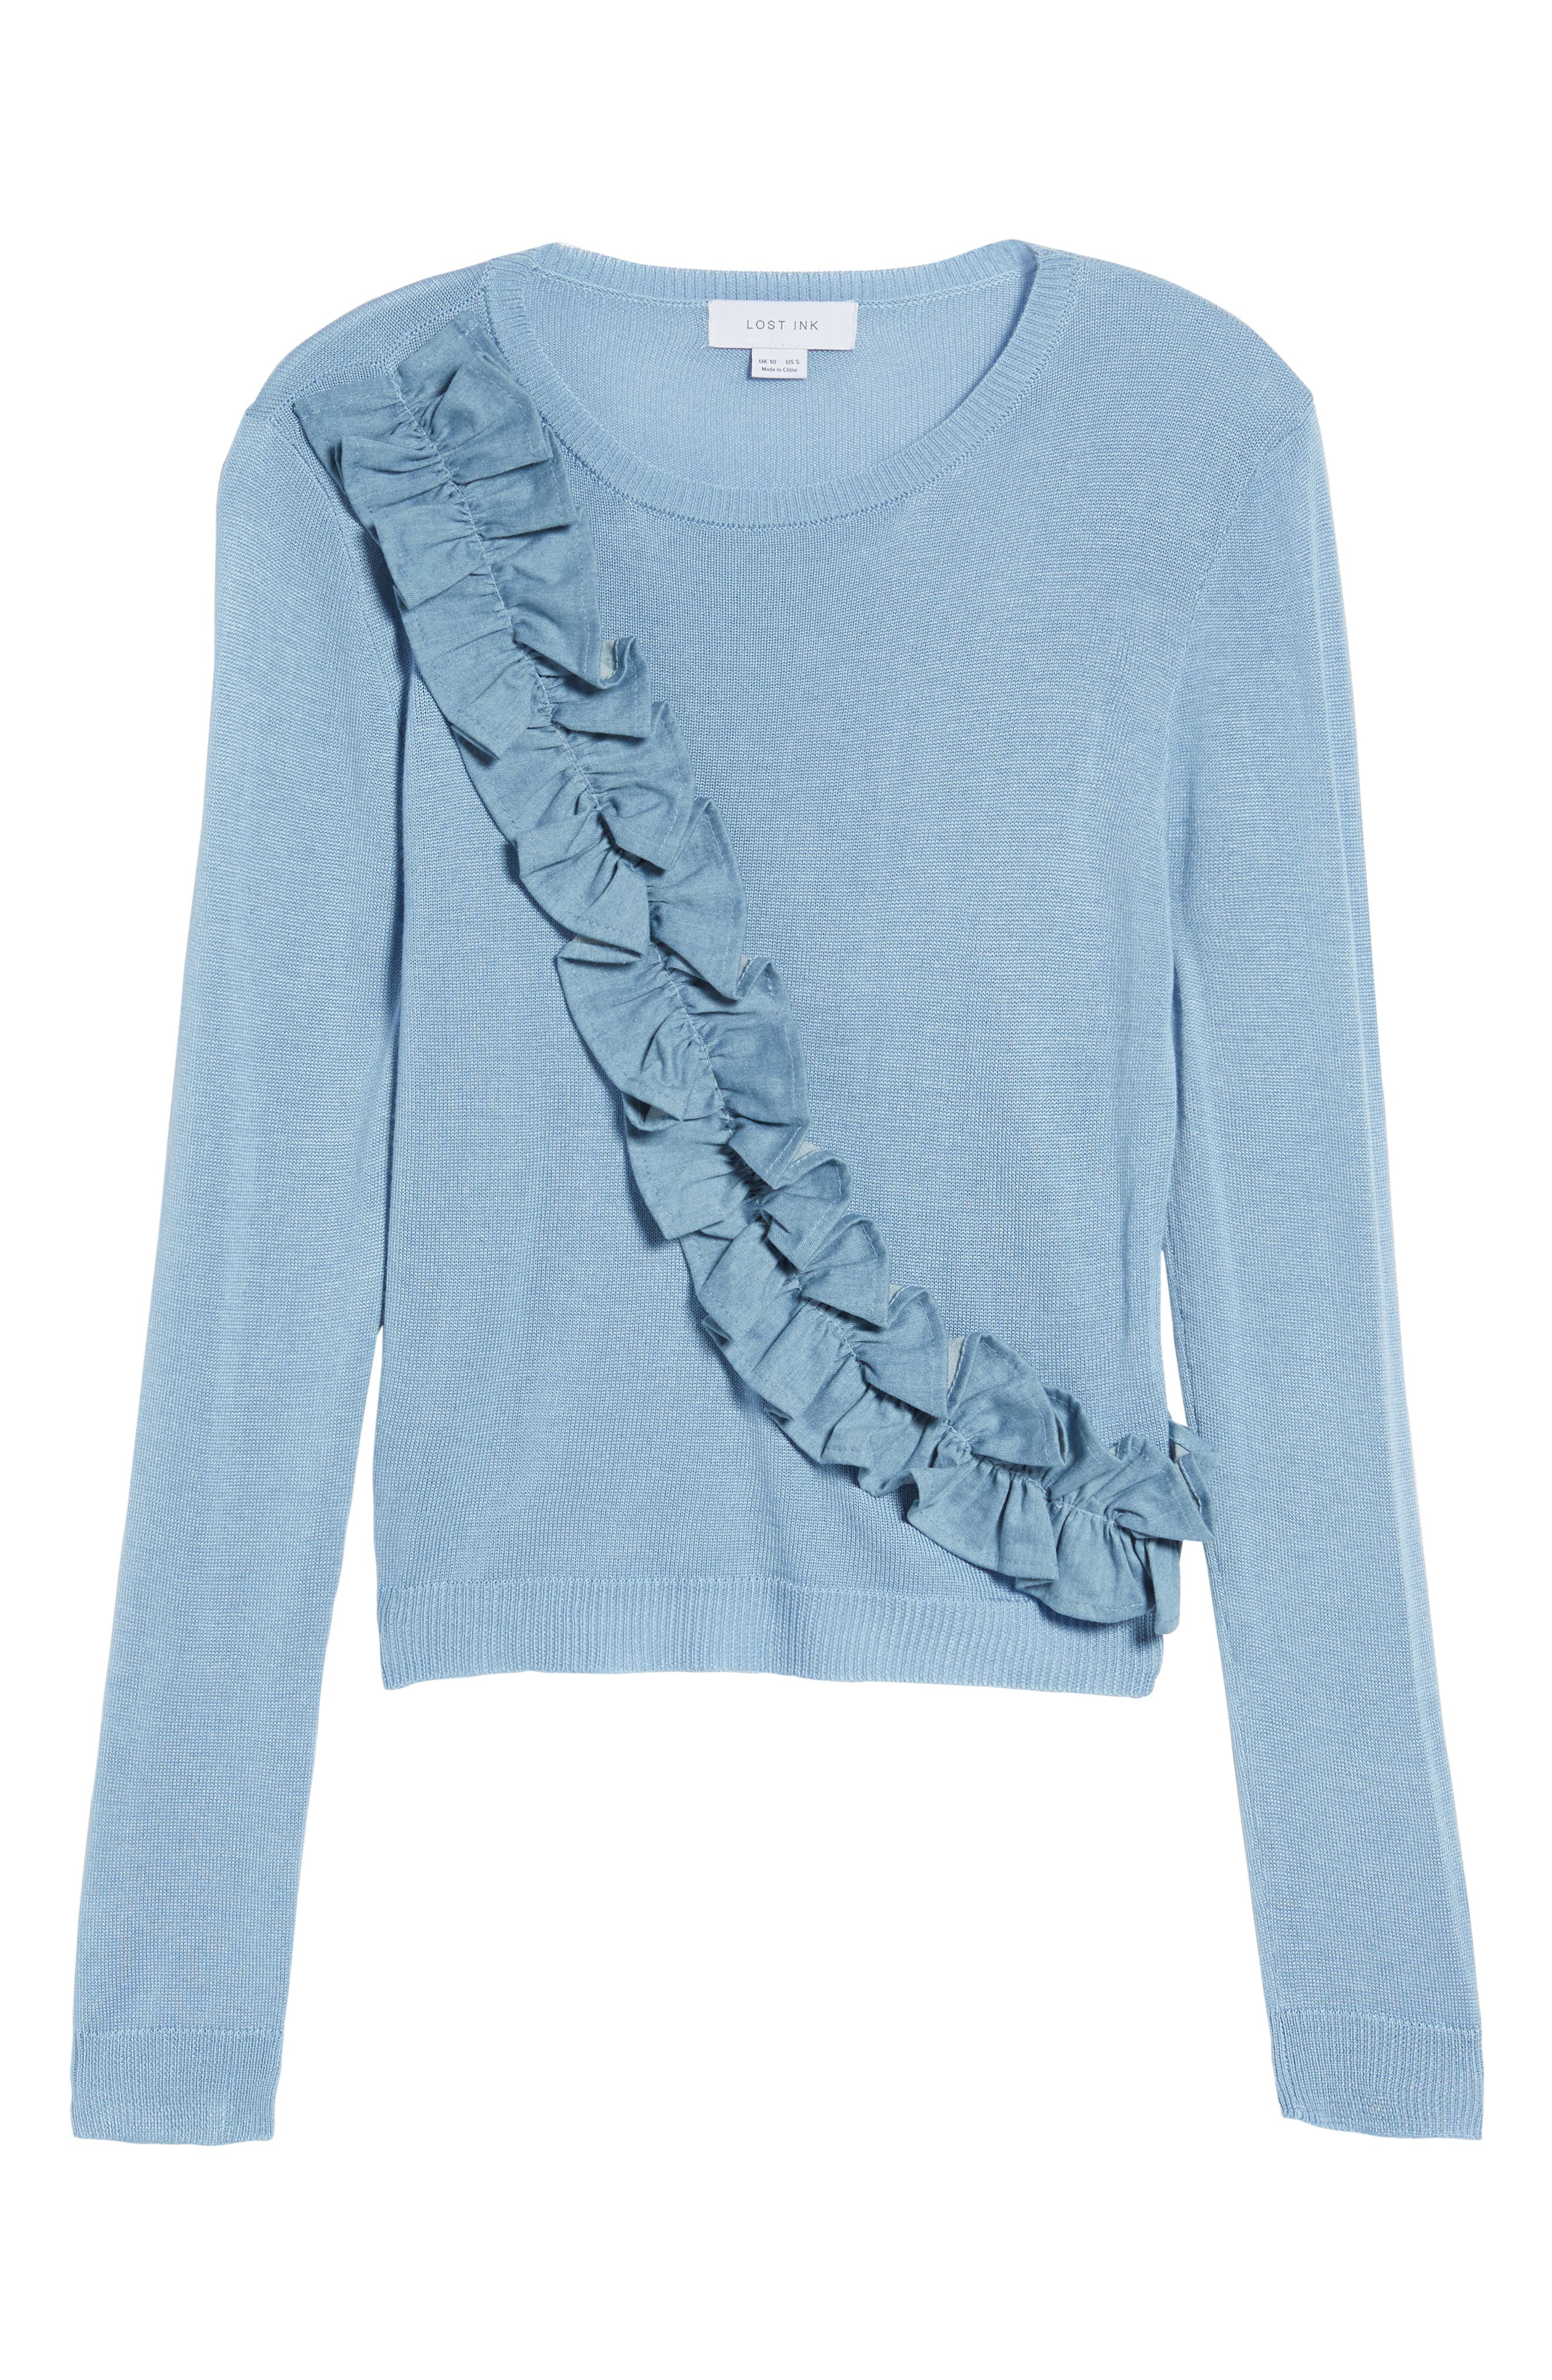 Asymmetrical Ruffle Sweater,                             Alternate thumbnail 7, color,                             Blue